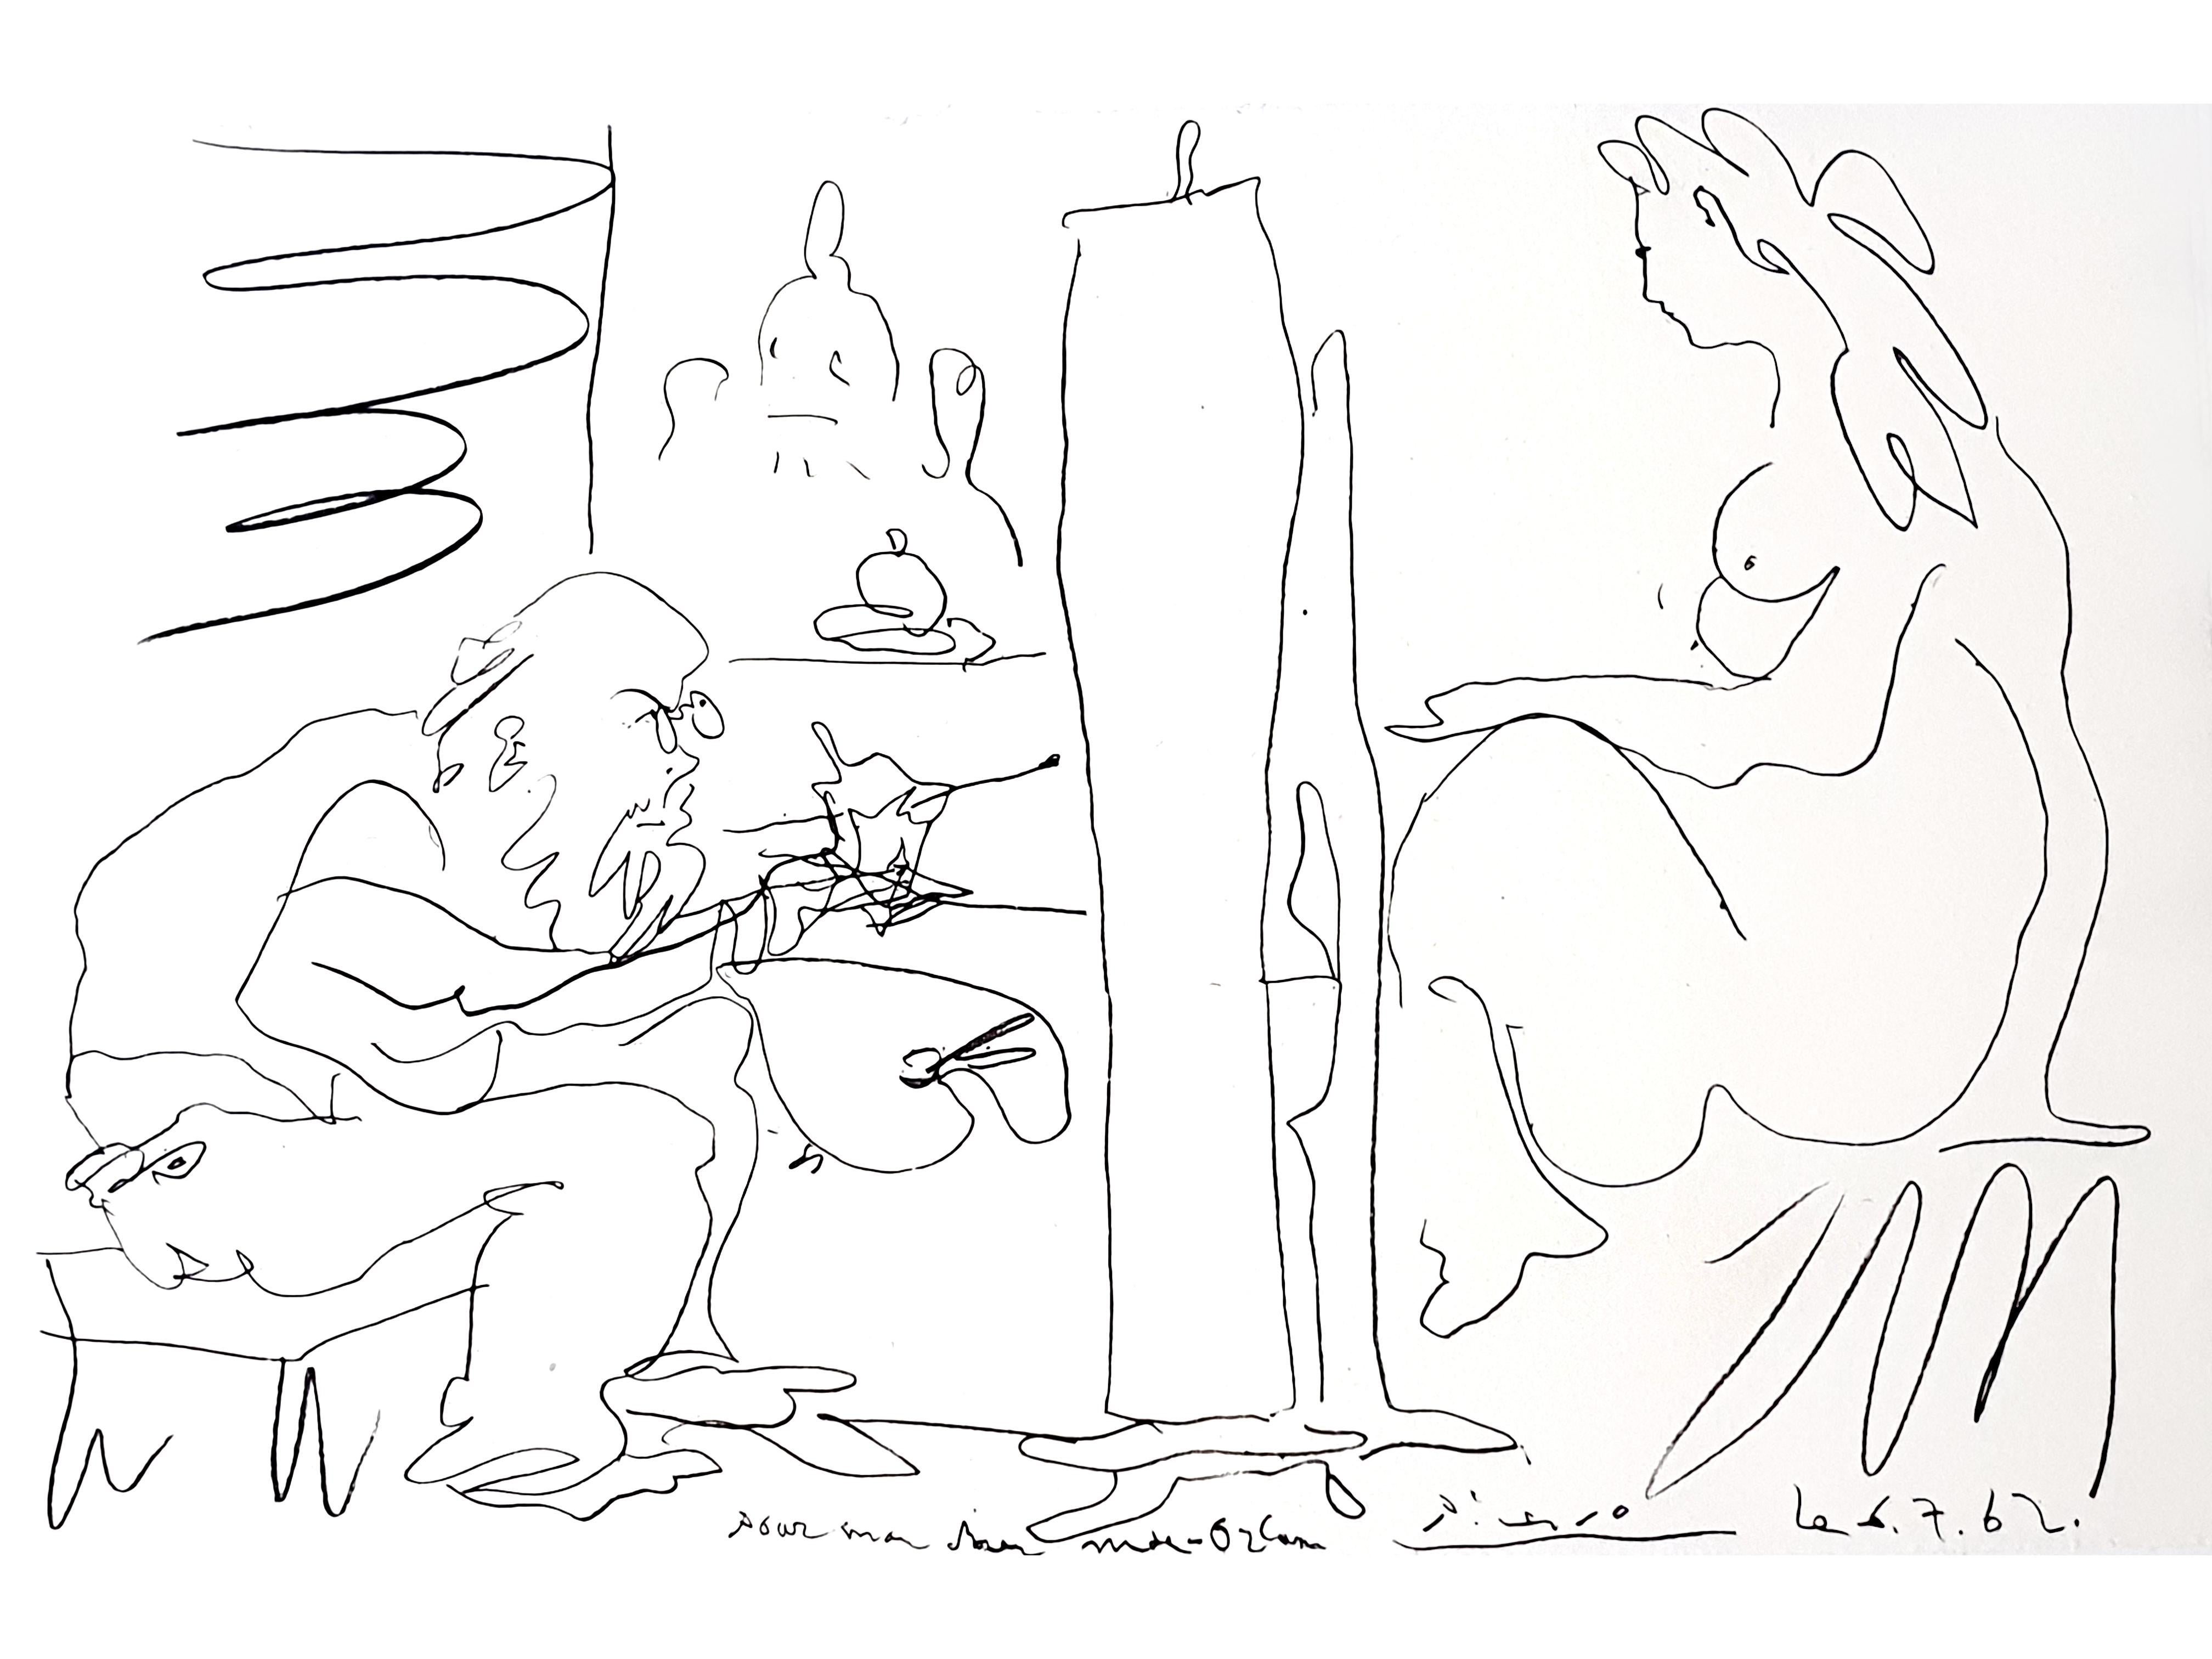 Pablo Picasso - The Painter and His Model - Original Lithograph